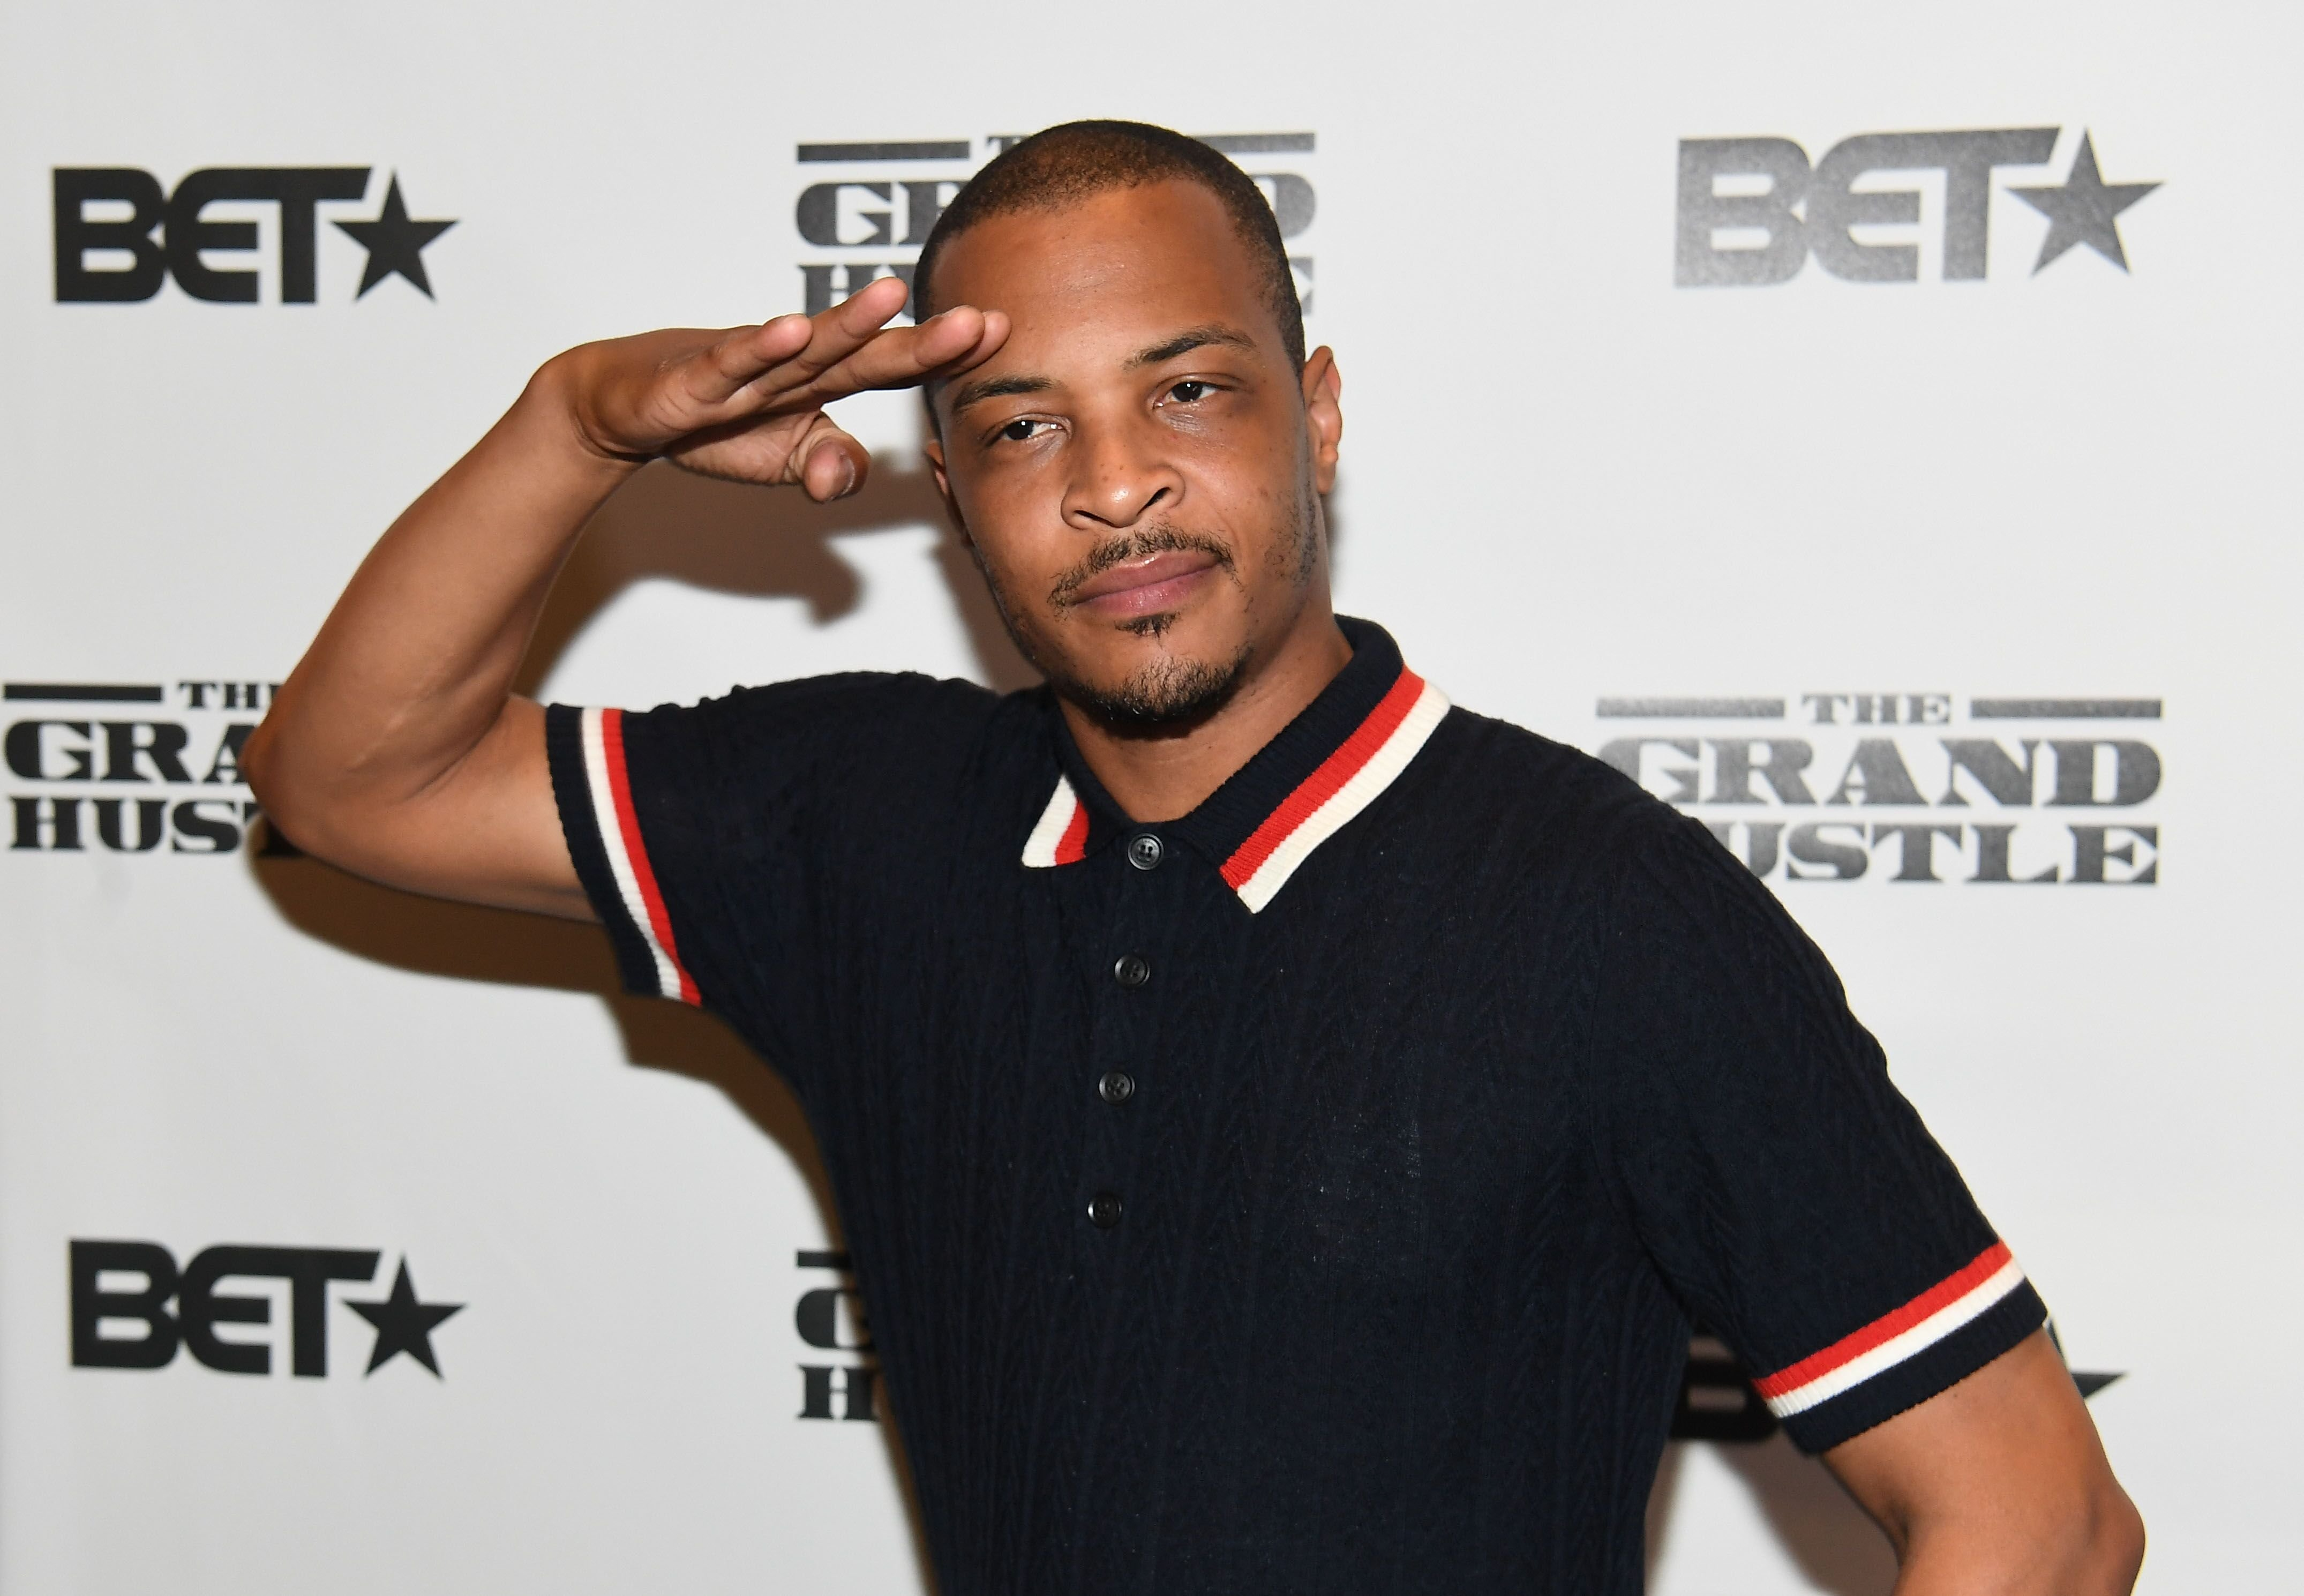 """Rapper Tip """"T.I."""" Harris at a BET event for """"The Grand Hussle""""/ Source: Getty Images"""